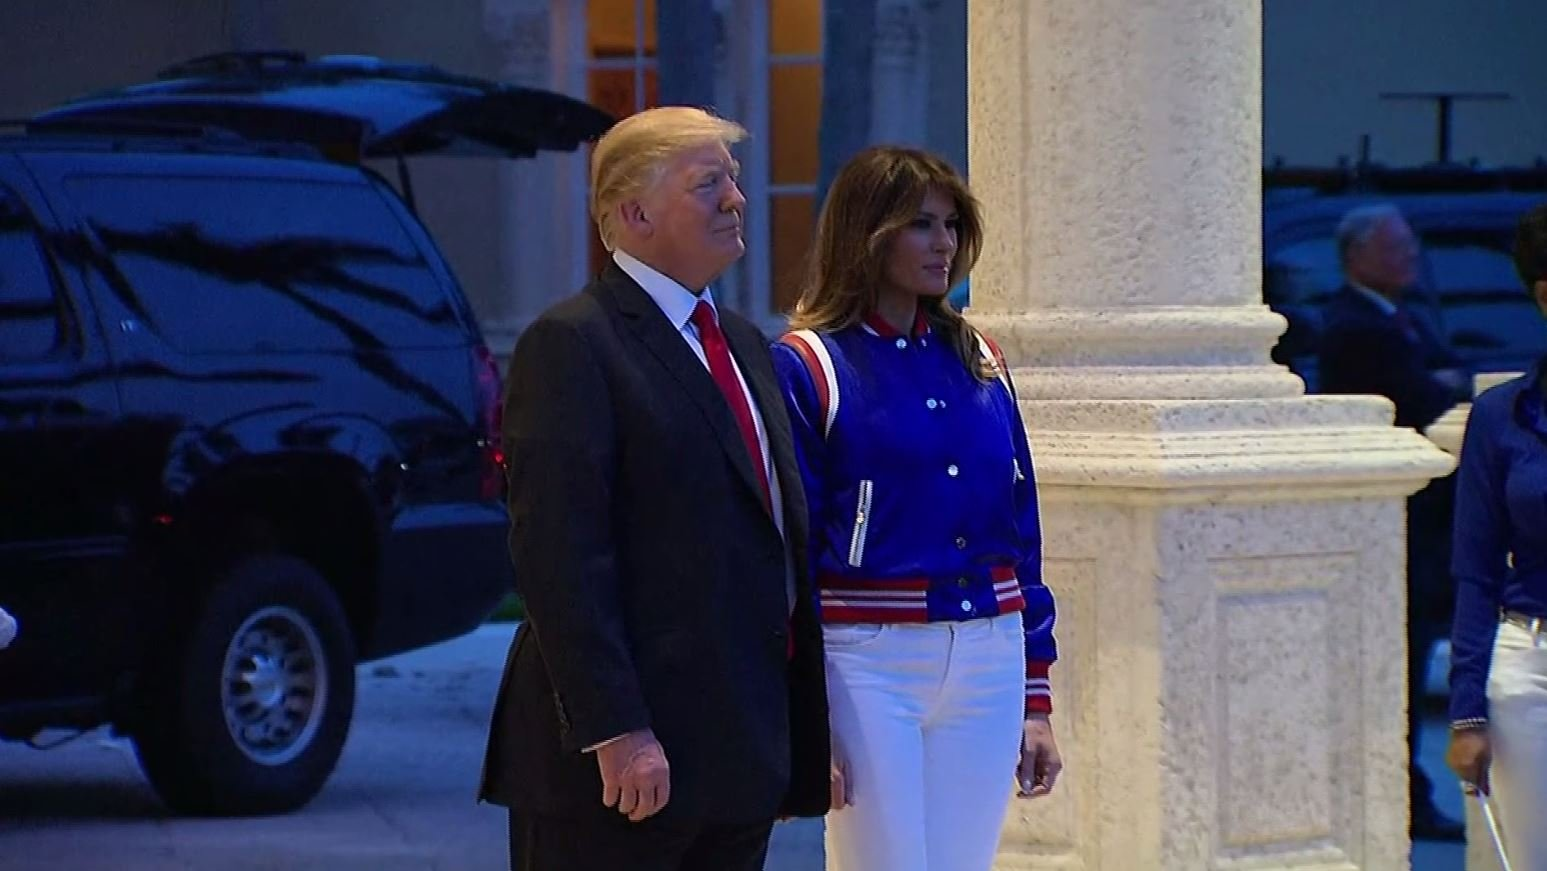 President Donald Trump and first lady Melania Trump watch as the Florida Atlantic University Marching Band welcomes the president to his private golf club in West Palm Beach, Florida, where he hosted a Super Bowl watch party. (Source: CNN)